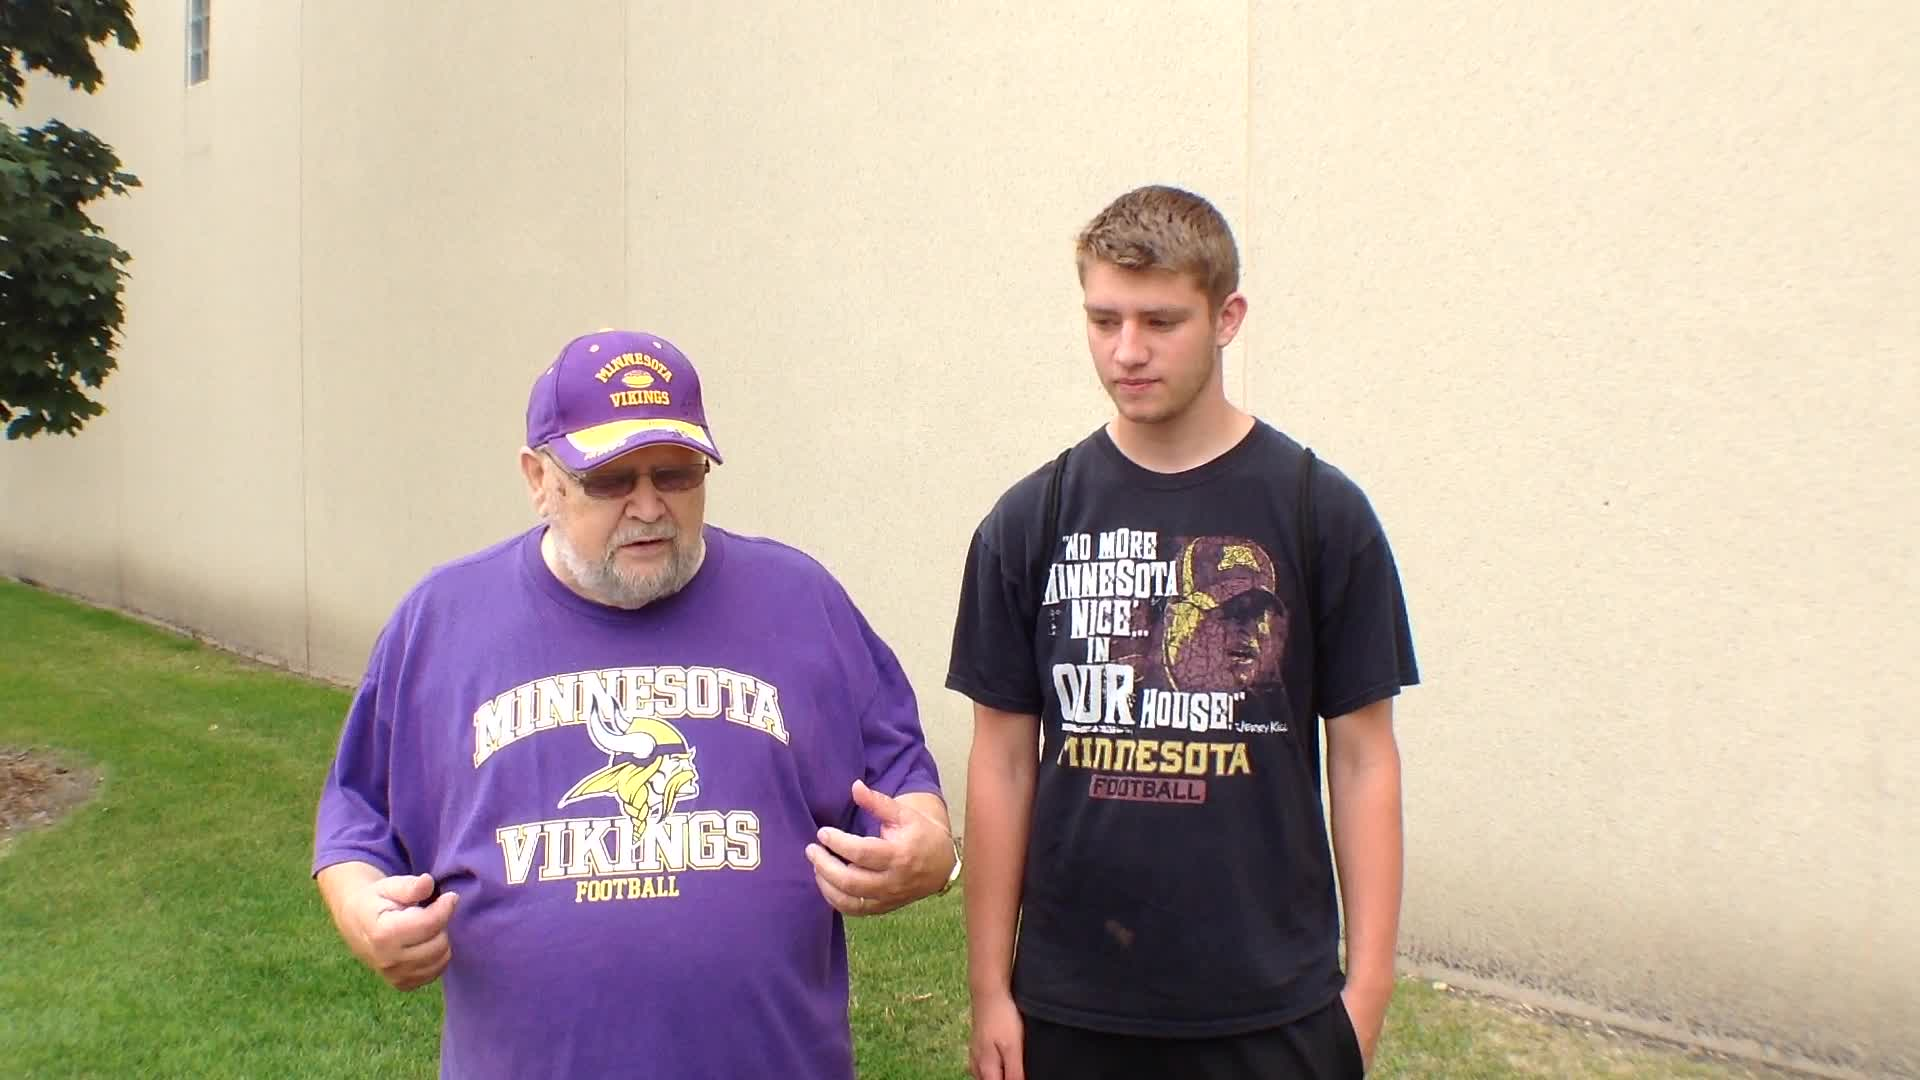 Robert Ruble and Eli Dechamps, Rochester, MN - Fan experiences at Minnesota Vikings Training Camp at Minnesota State University, Mankato